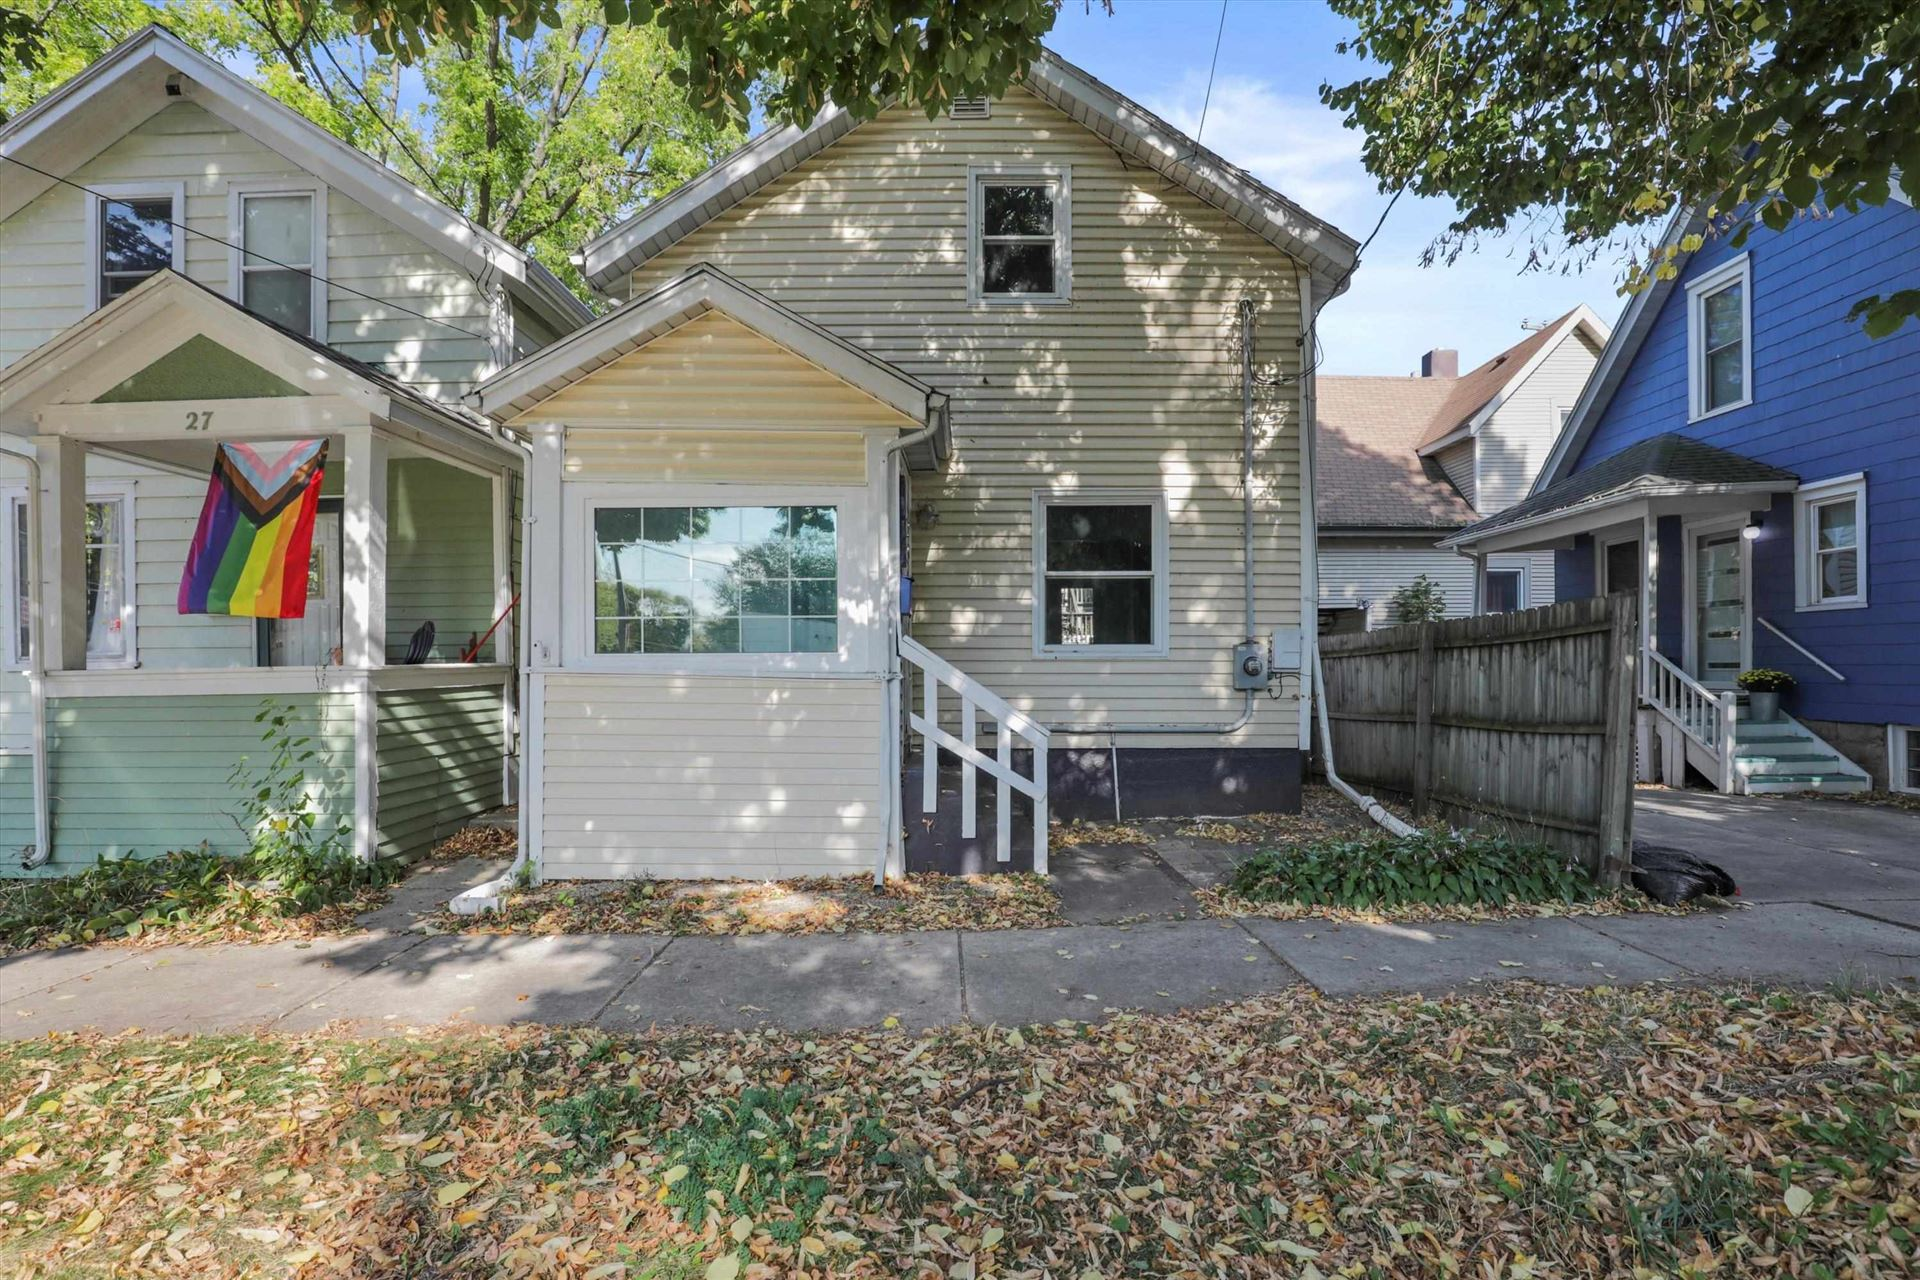 Photo for 29 S 4th St, Madison, WI 53704 (MLS # 1921807)